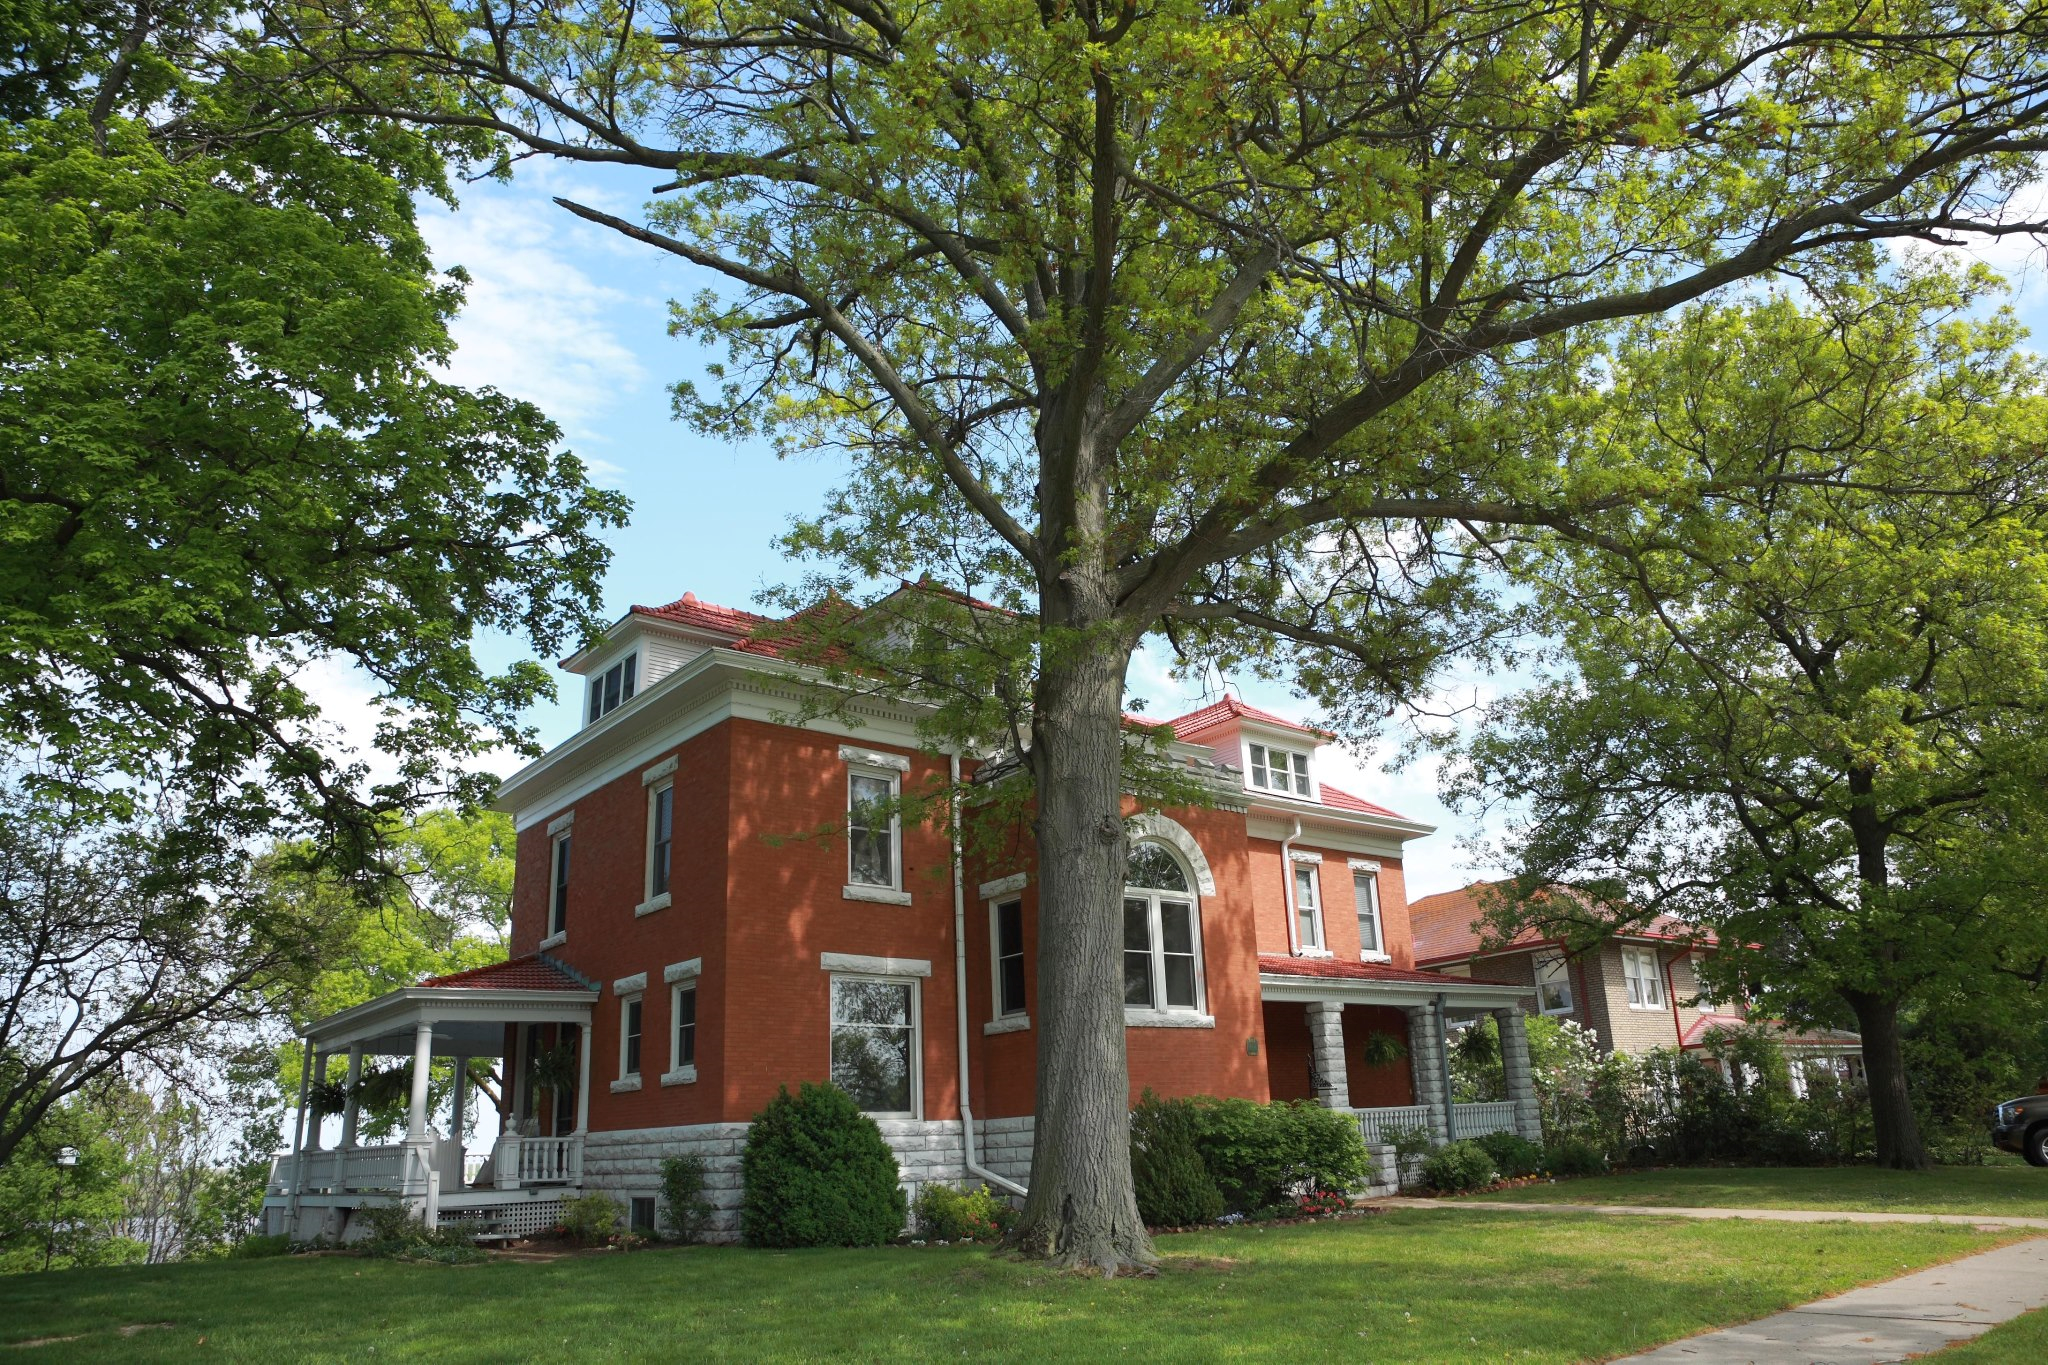 1902 Renaissance Revival Mansion Overlooking Mississippi River In Keokuk Iowa Historic Mansion Historic Home Historic Homes For Sale